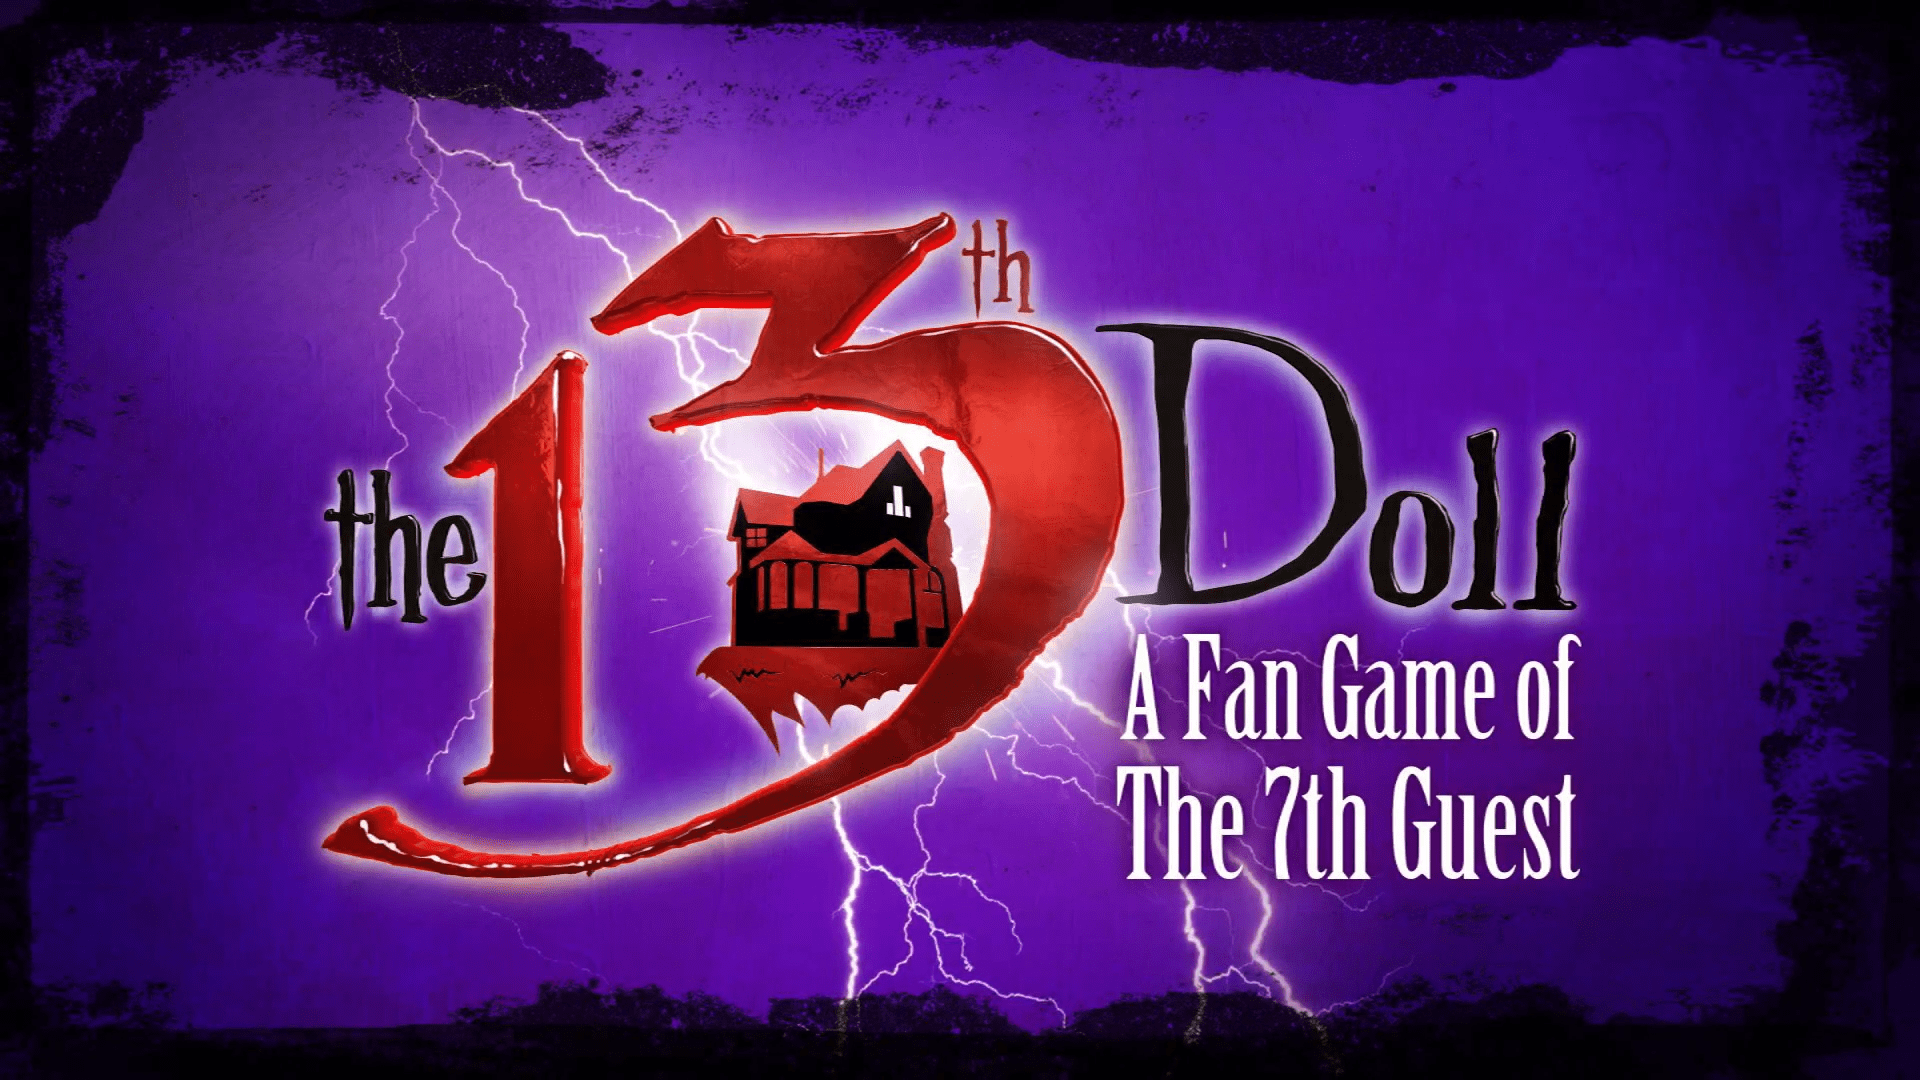 The 13th Doll, The Fully-Licensed Fan Game Based On The 7th Guest, Gets A New Trailer And Release Date